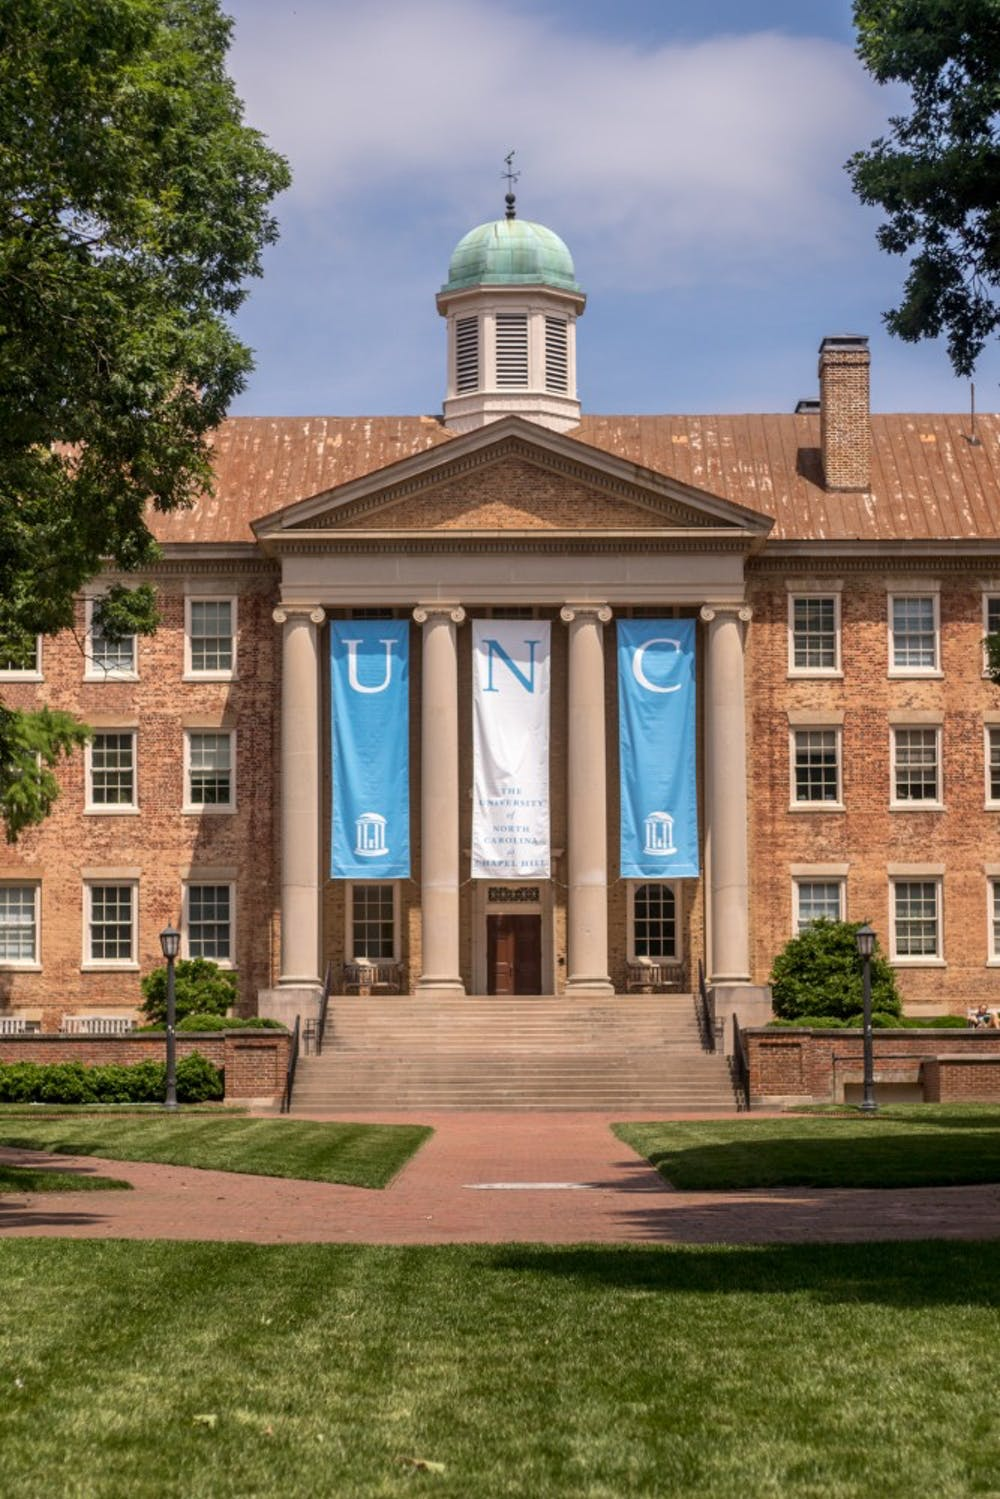 UNC has raked in over $2 billion in donations. It's only halfway done